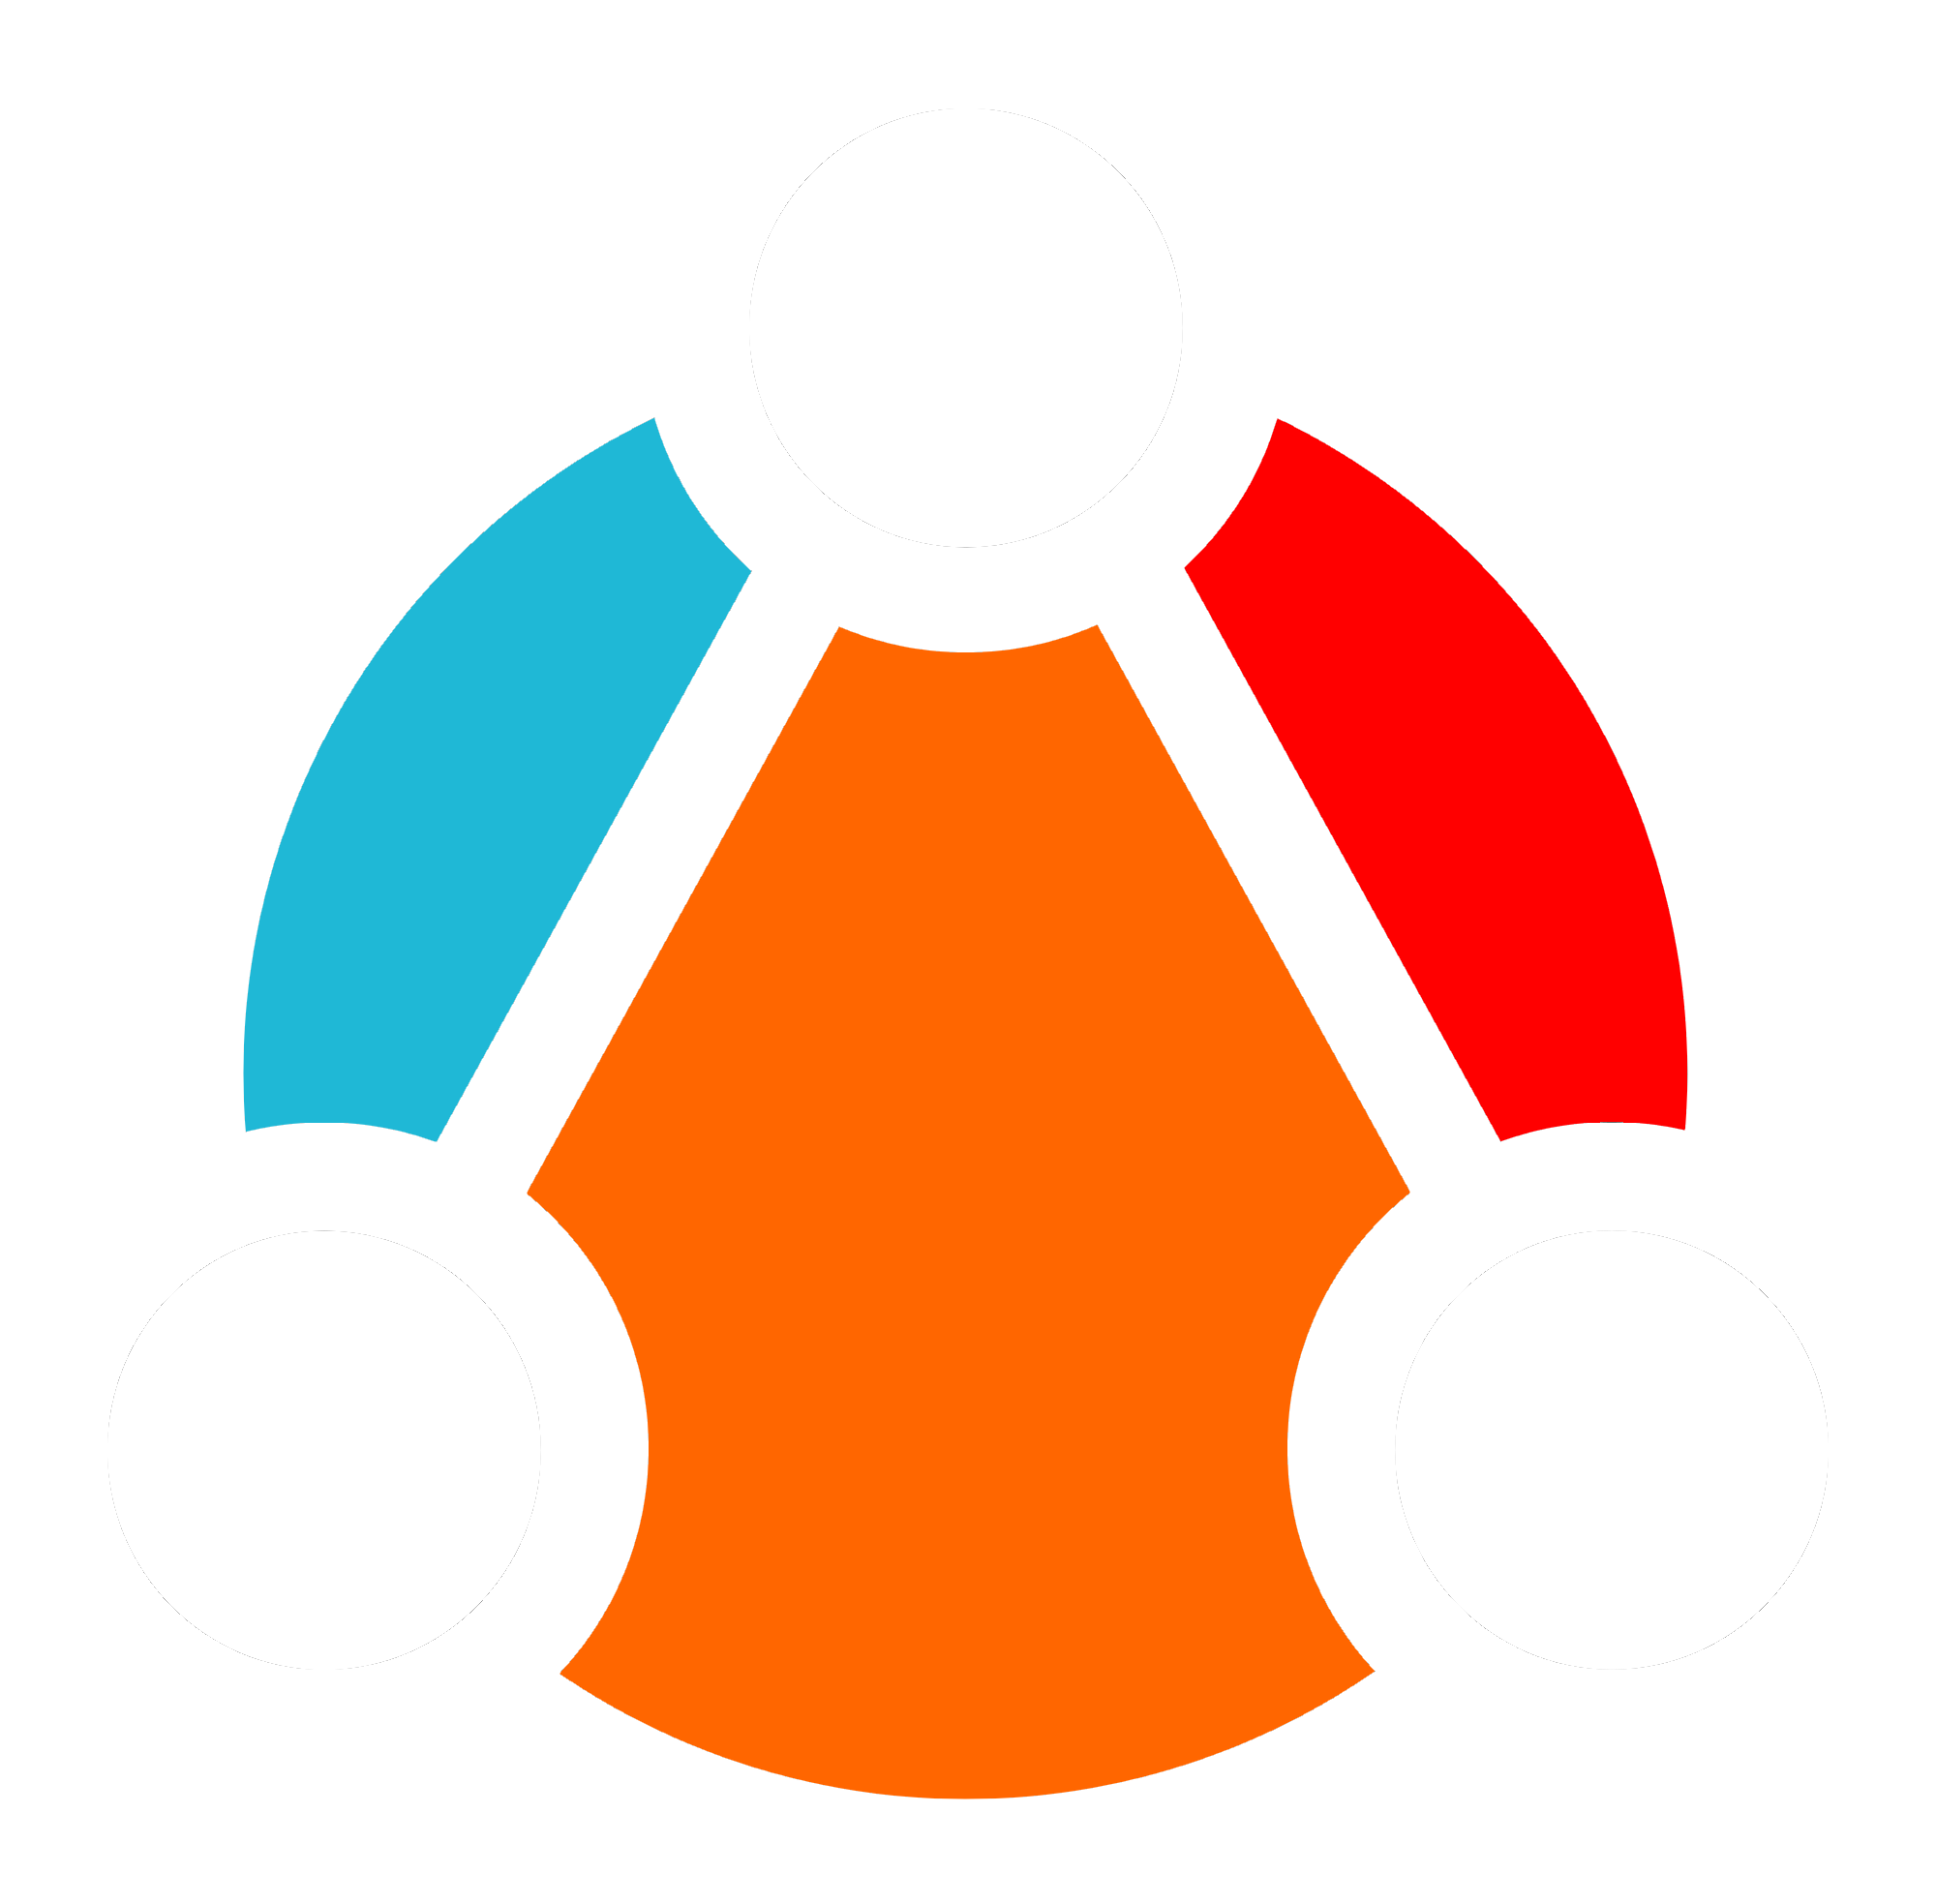 logo_colors_transparent2.png